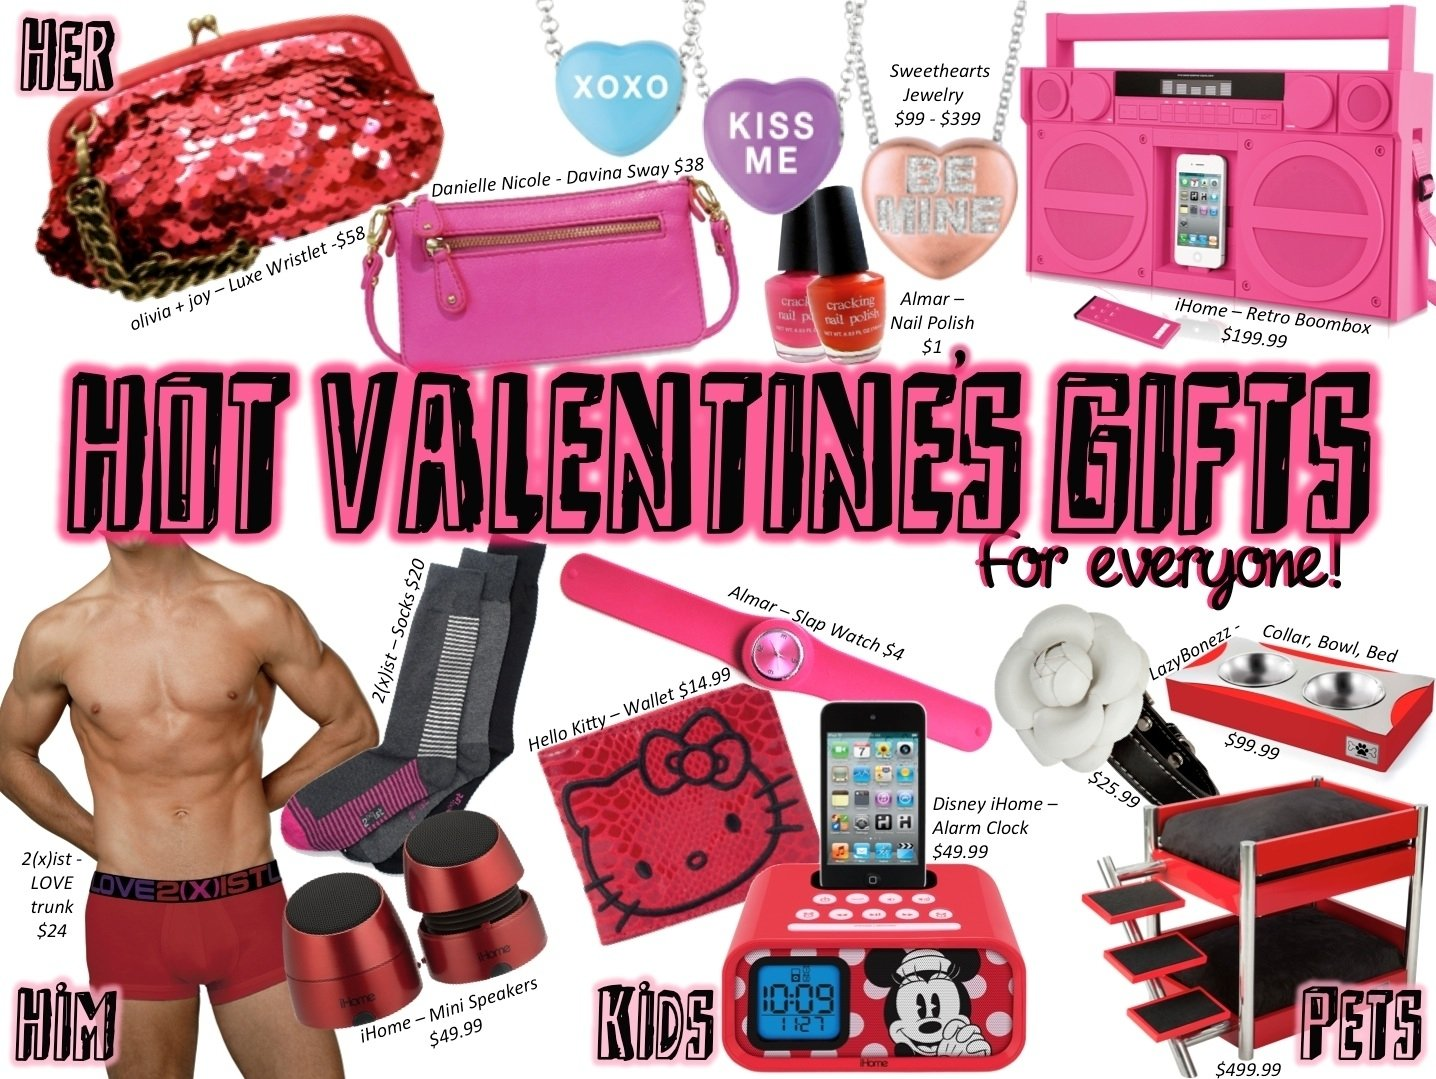 gifts design ideas: good valentines day gifts for men valentine